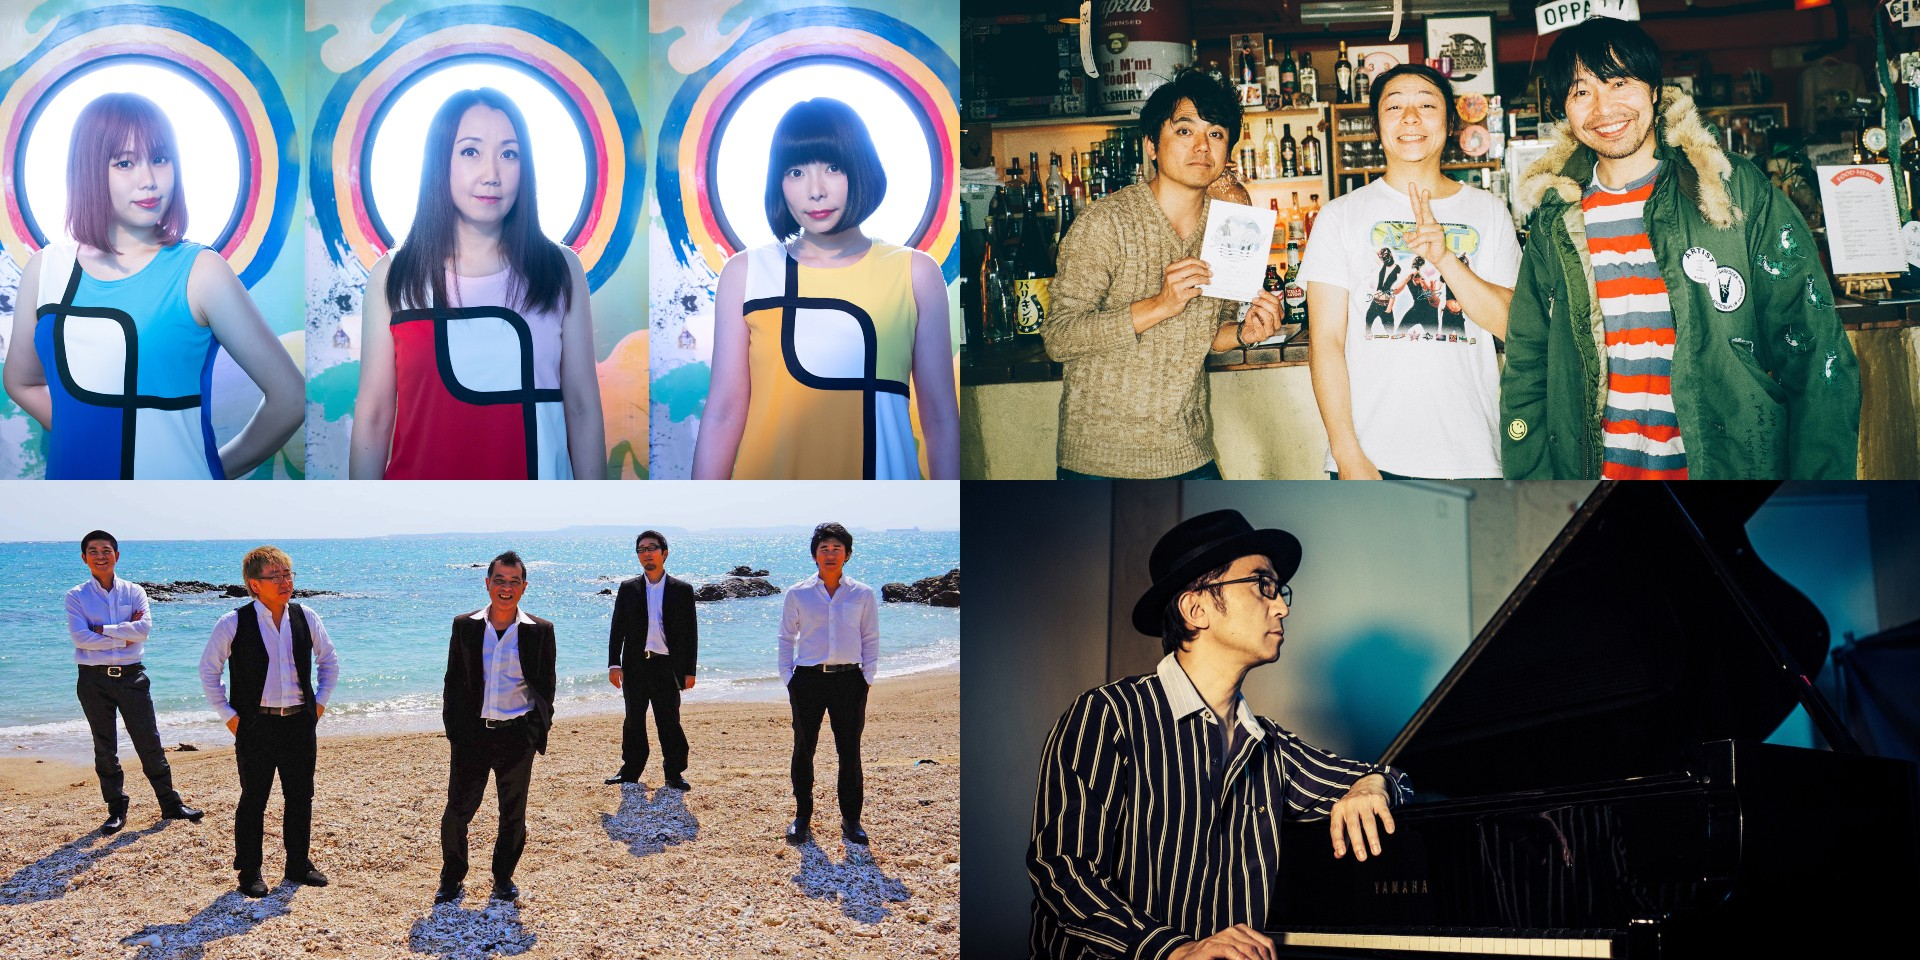 Music Lane Festival Okinawa 2021 to feature Shonen Knife, Sunny Day Service, element of the moment, RIKUO, and more in hybrid showcase festival